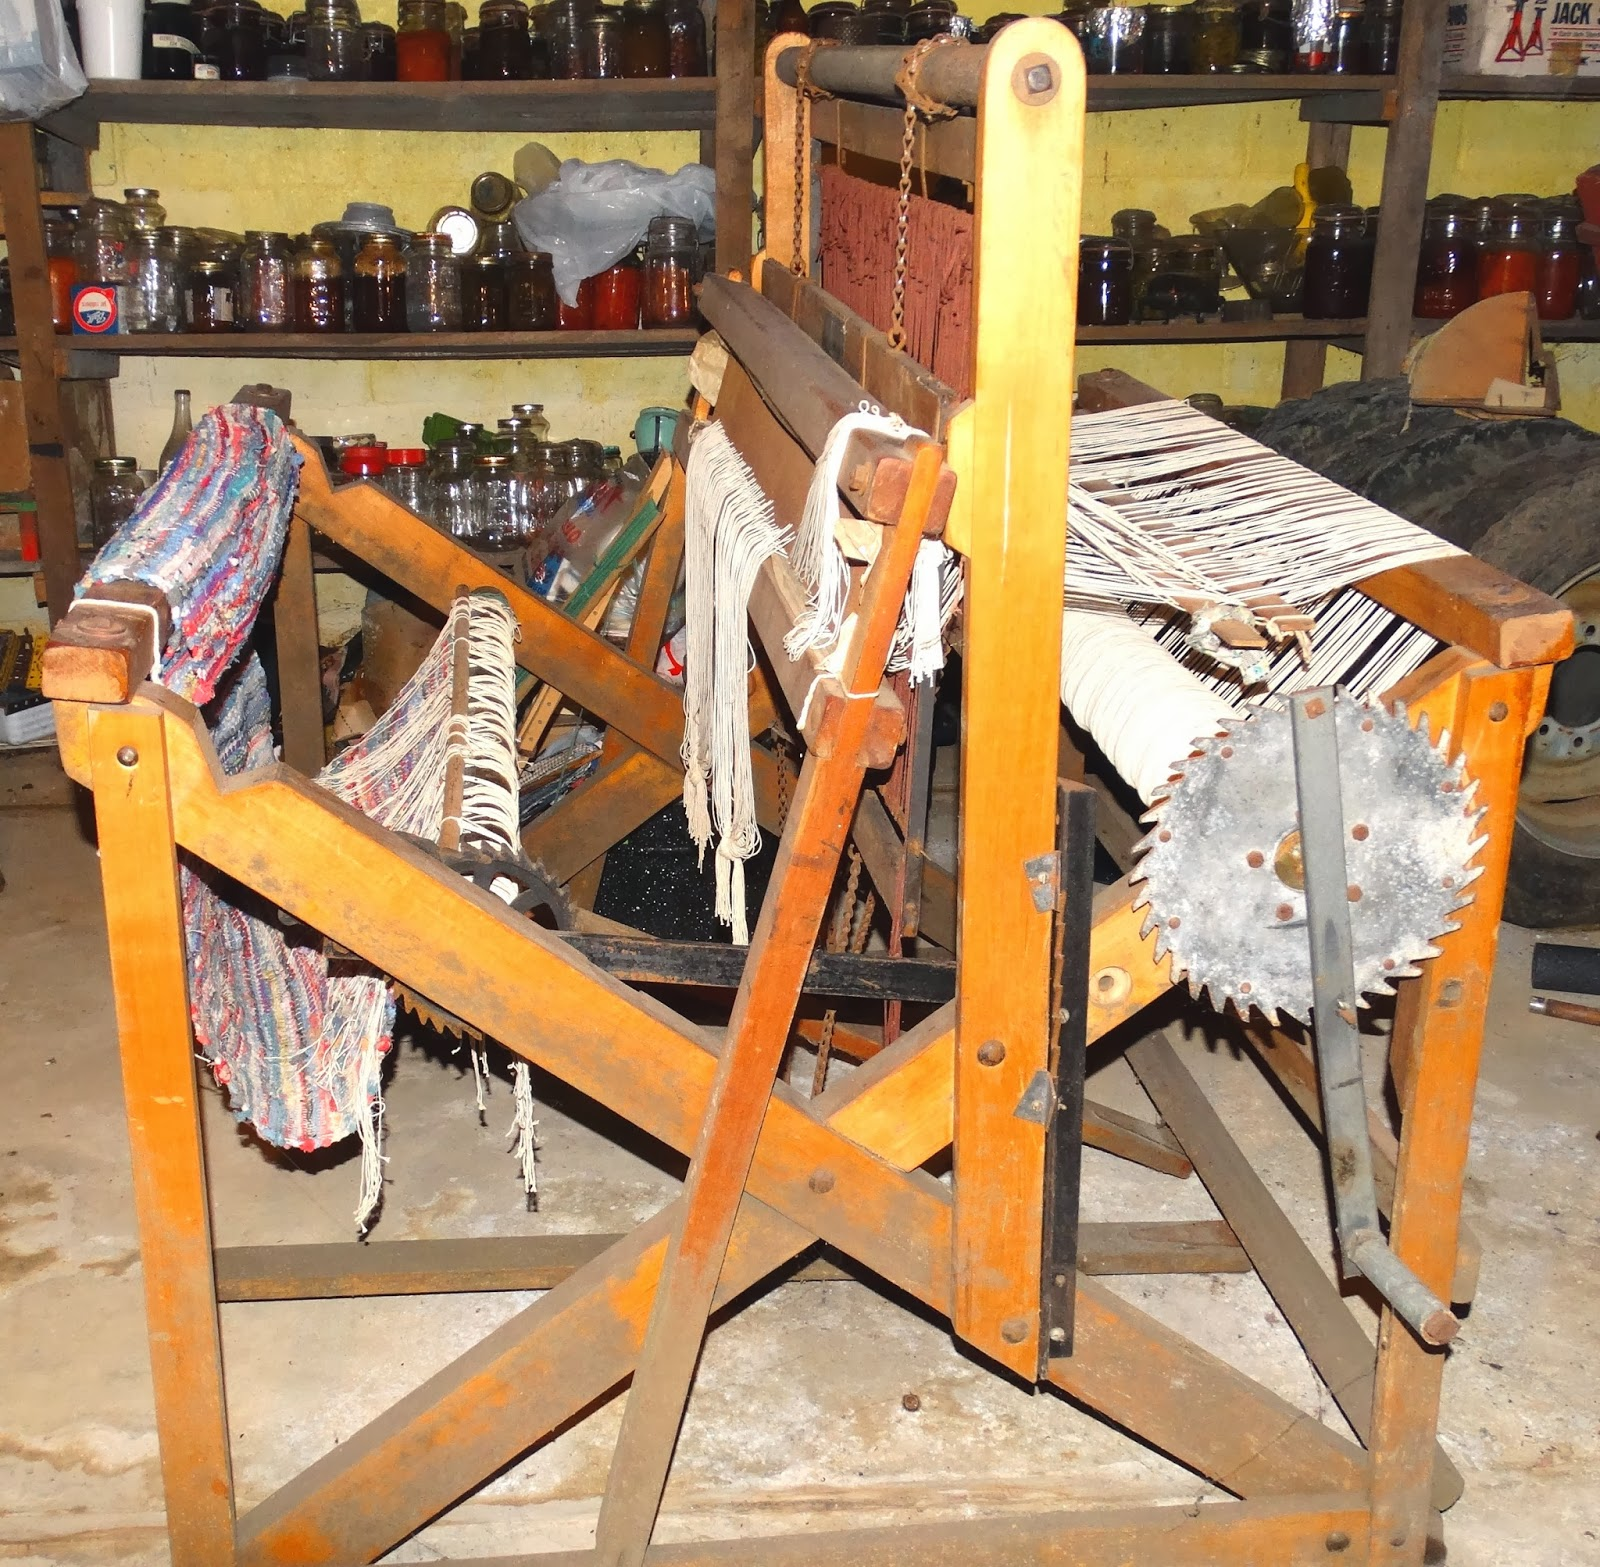 Elaine's Creative Works: Our Families Old Union Loom Works